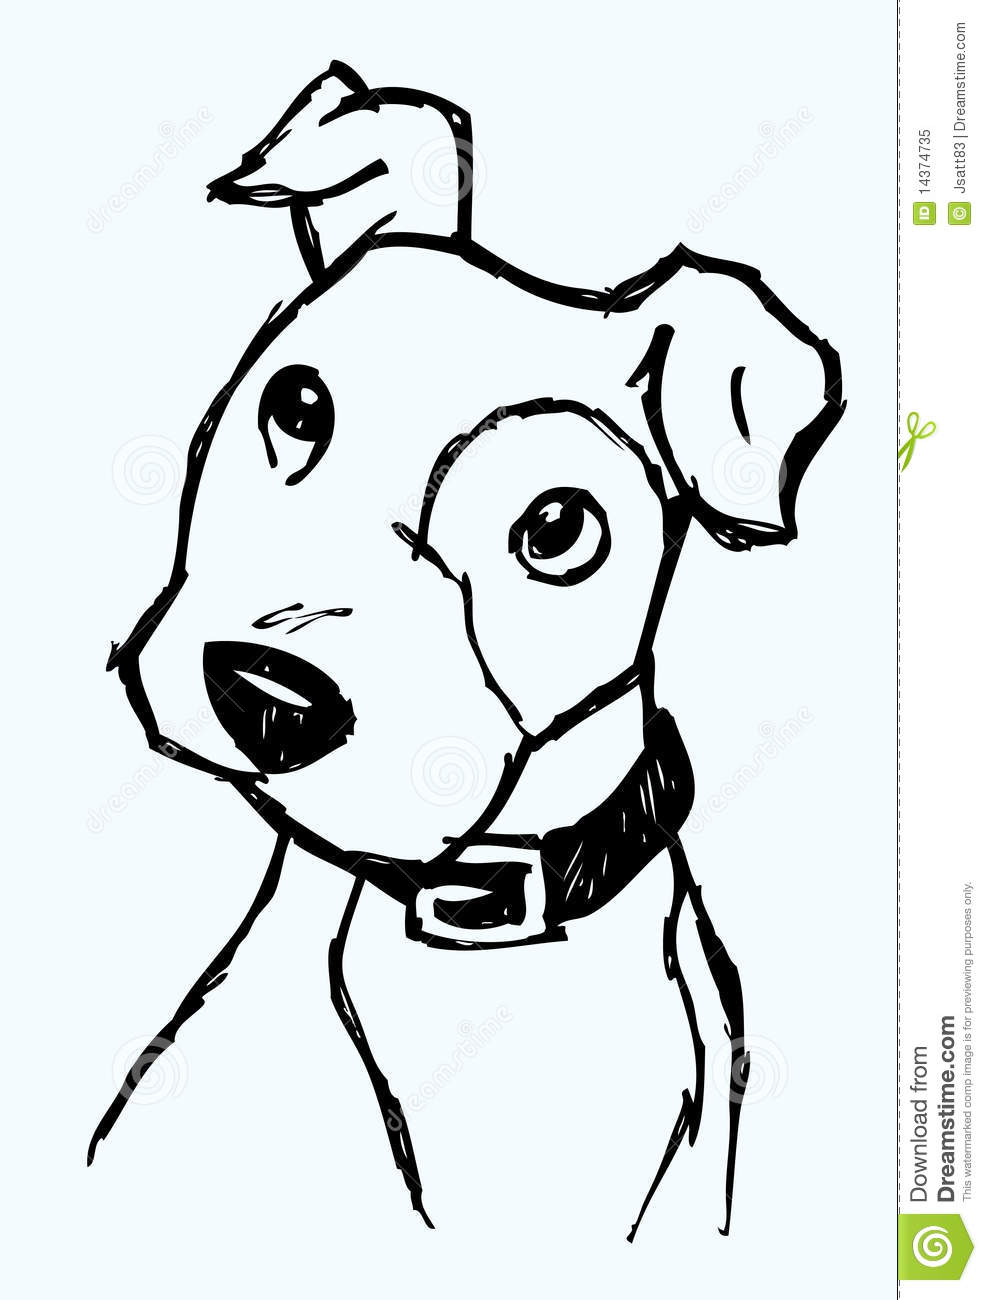 Curious Dog Sketch Stock Vector Illustration Of Pets 14374735 Dog Sketch Puppy Sketch Dog Face Drawing